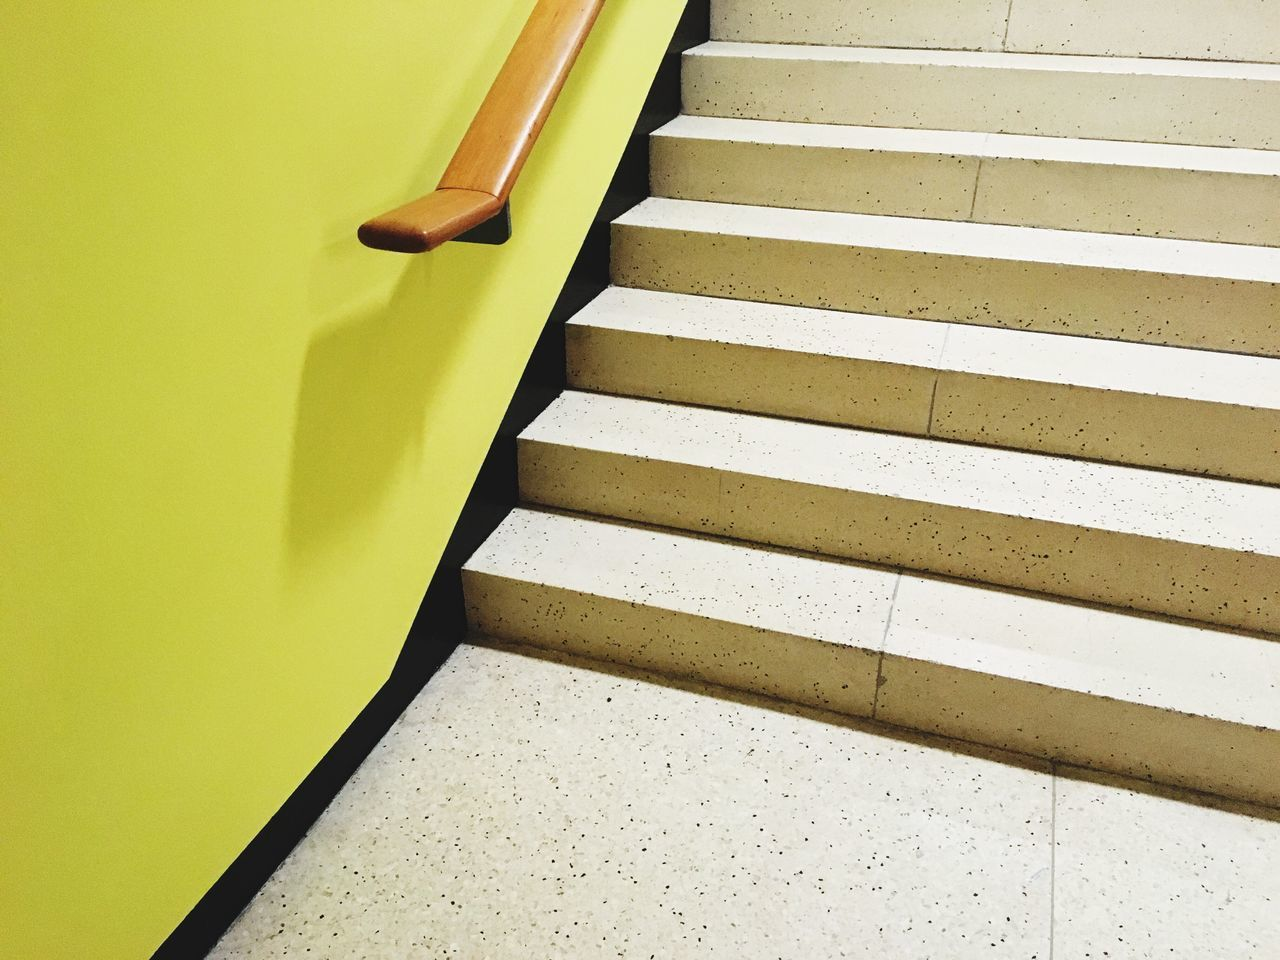 Staircase Steps And Staircases Steps Yellow No People Indoors  Day Architecture